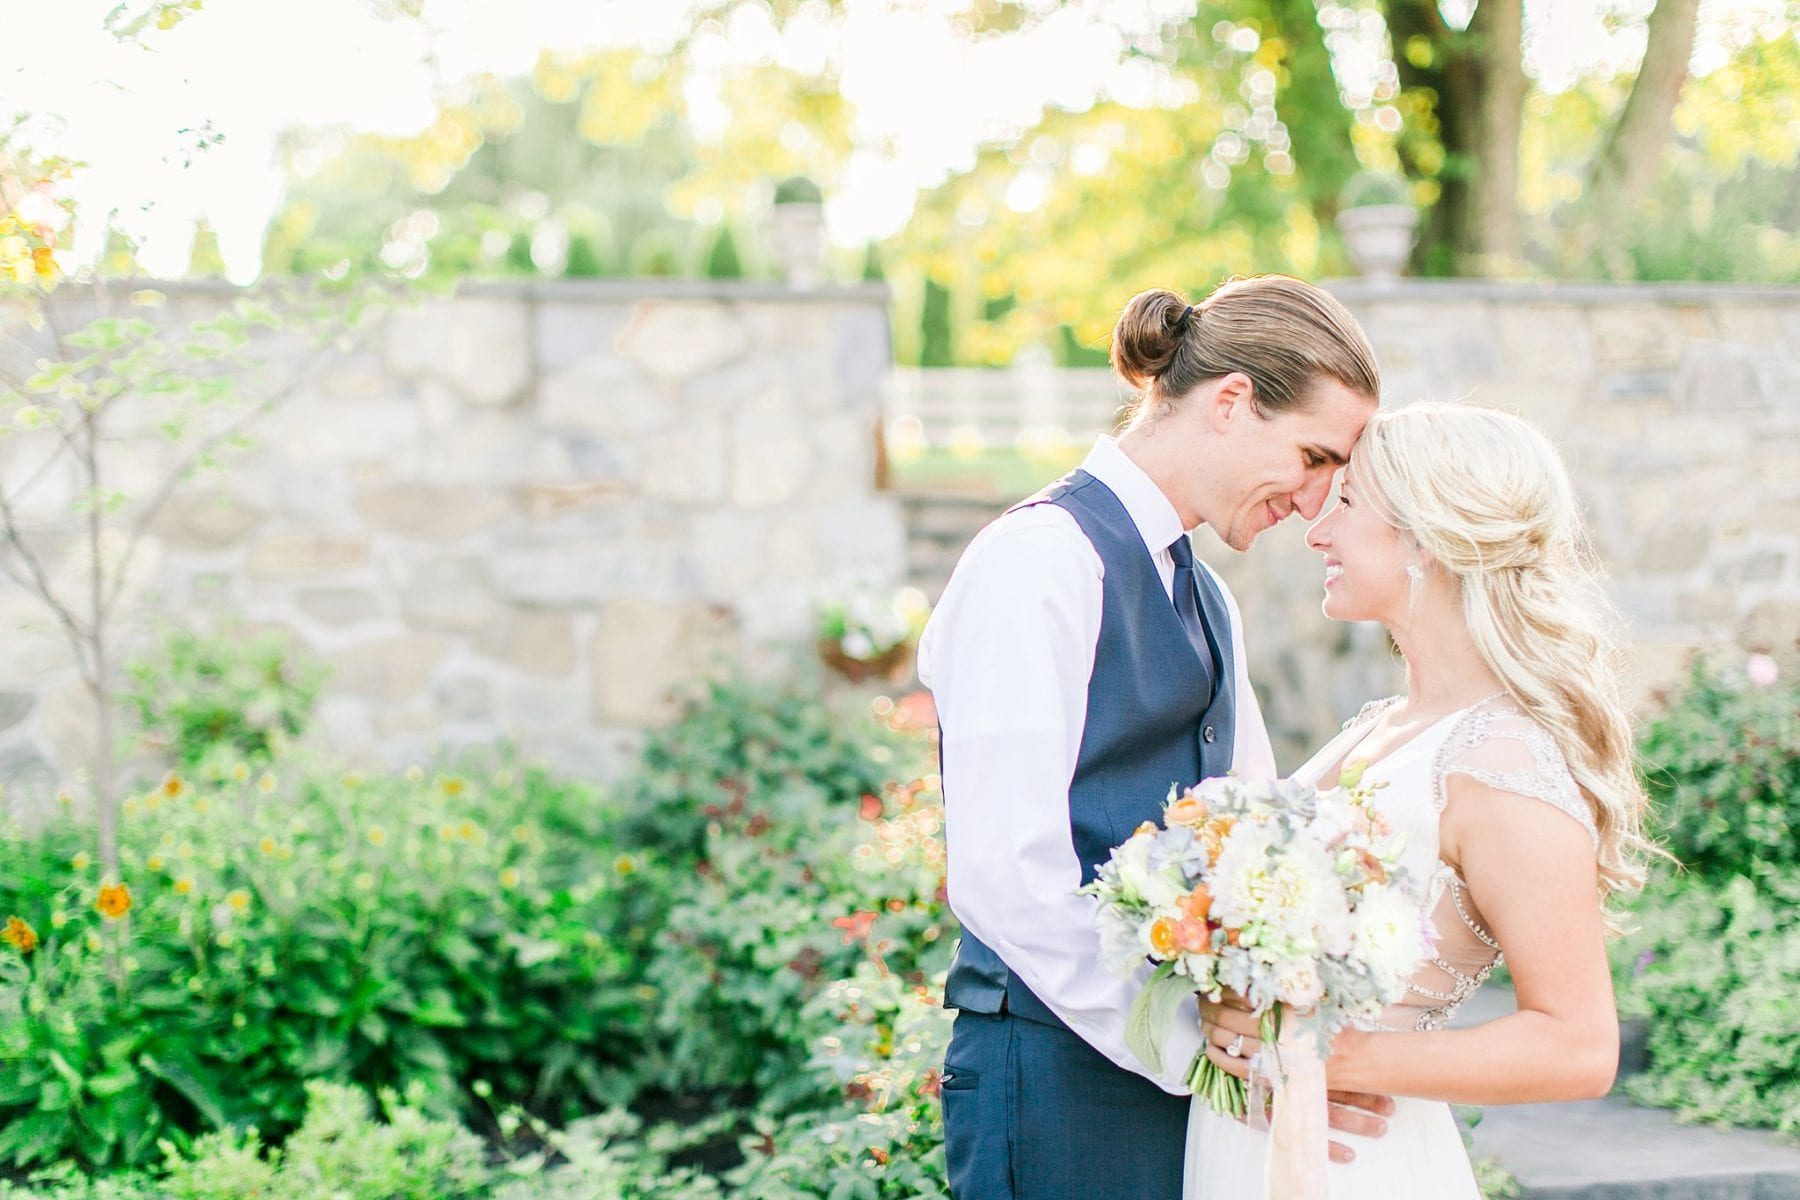 Pond View Farm Wedding Photos Maryland Wedding Photographer Kristen & Ryan Megan Kelsey Photography Blog-229.jpg